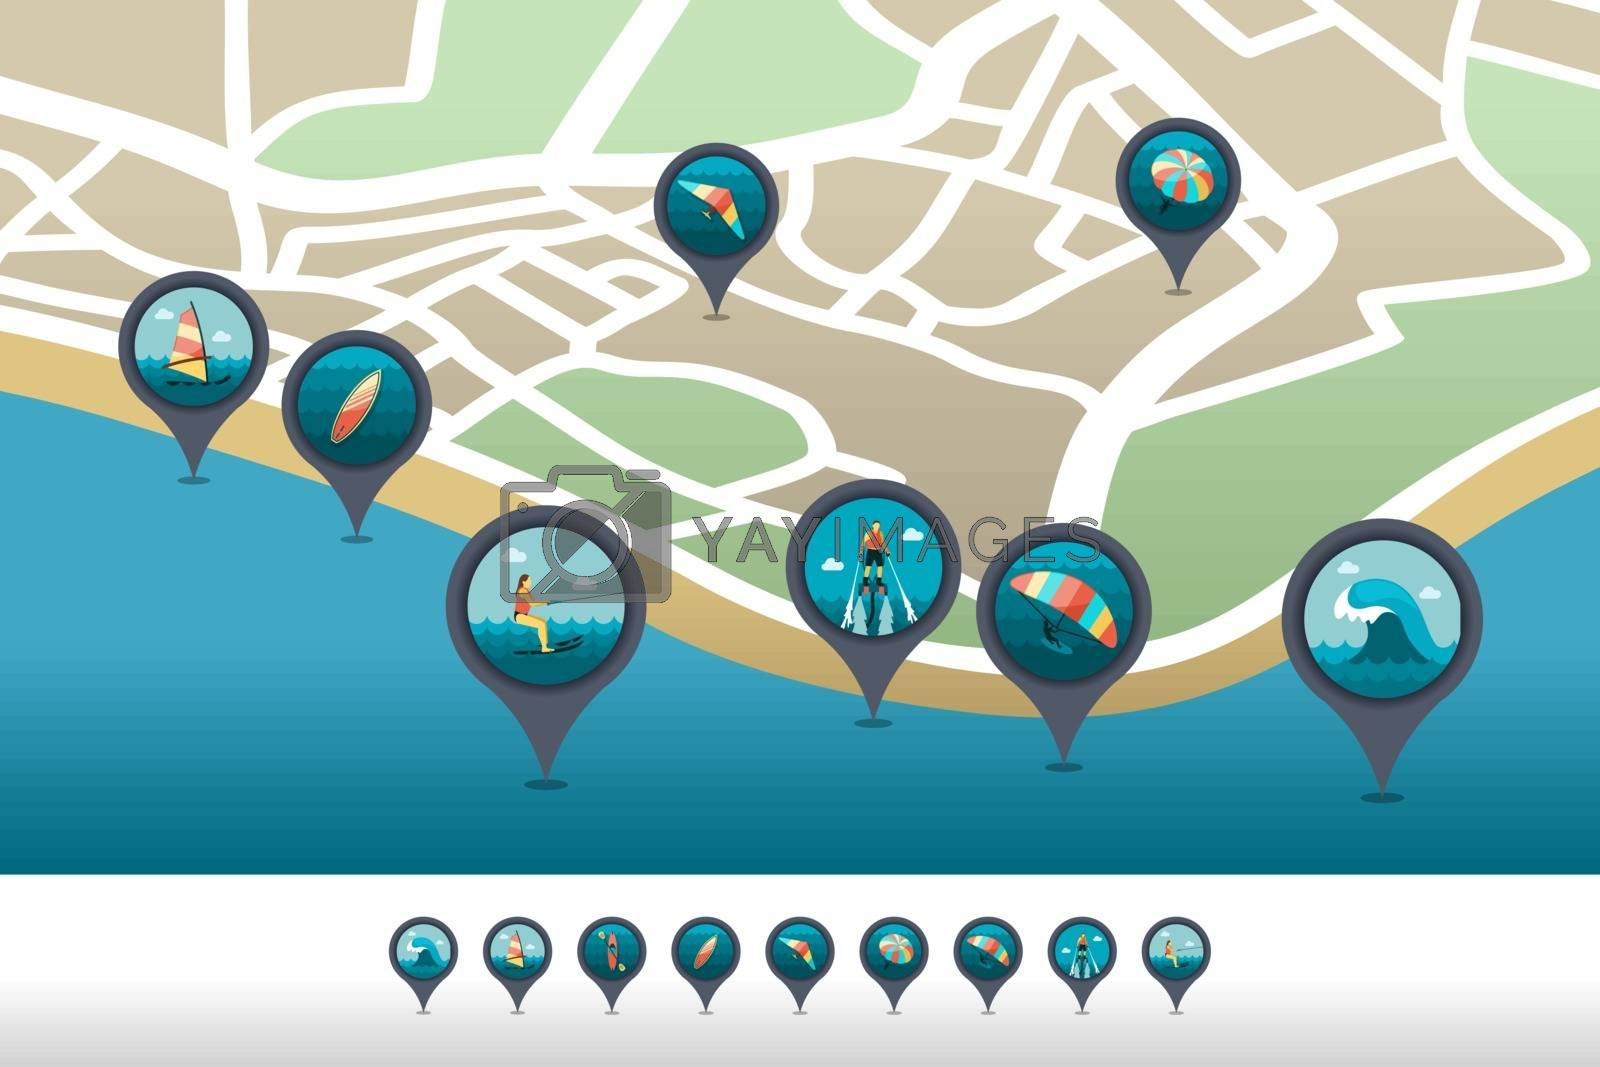 Extreme Water Sport pin map icon located on the map by nosik